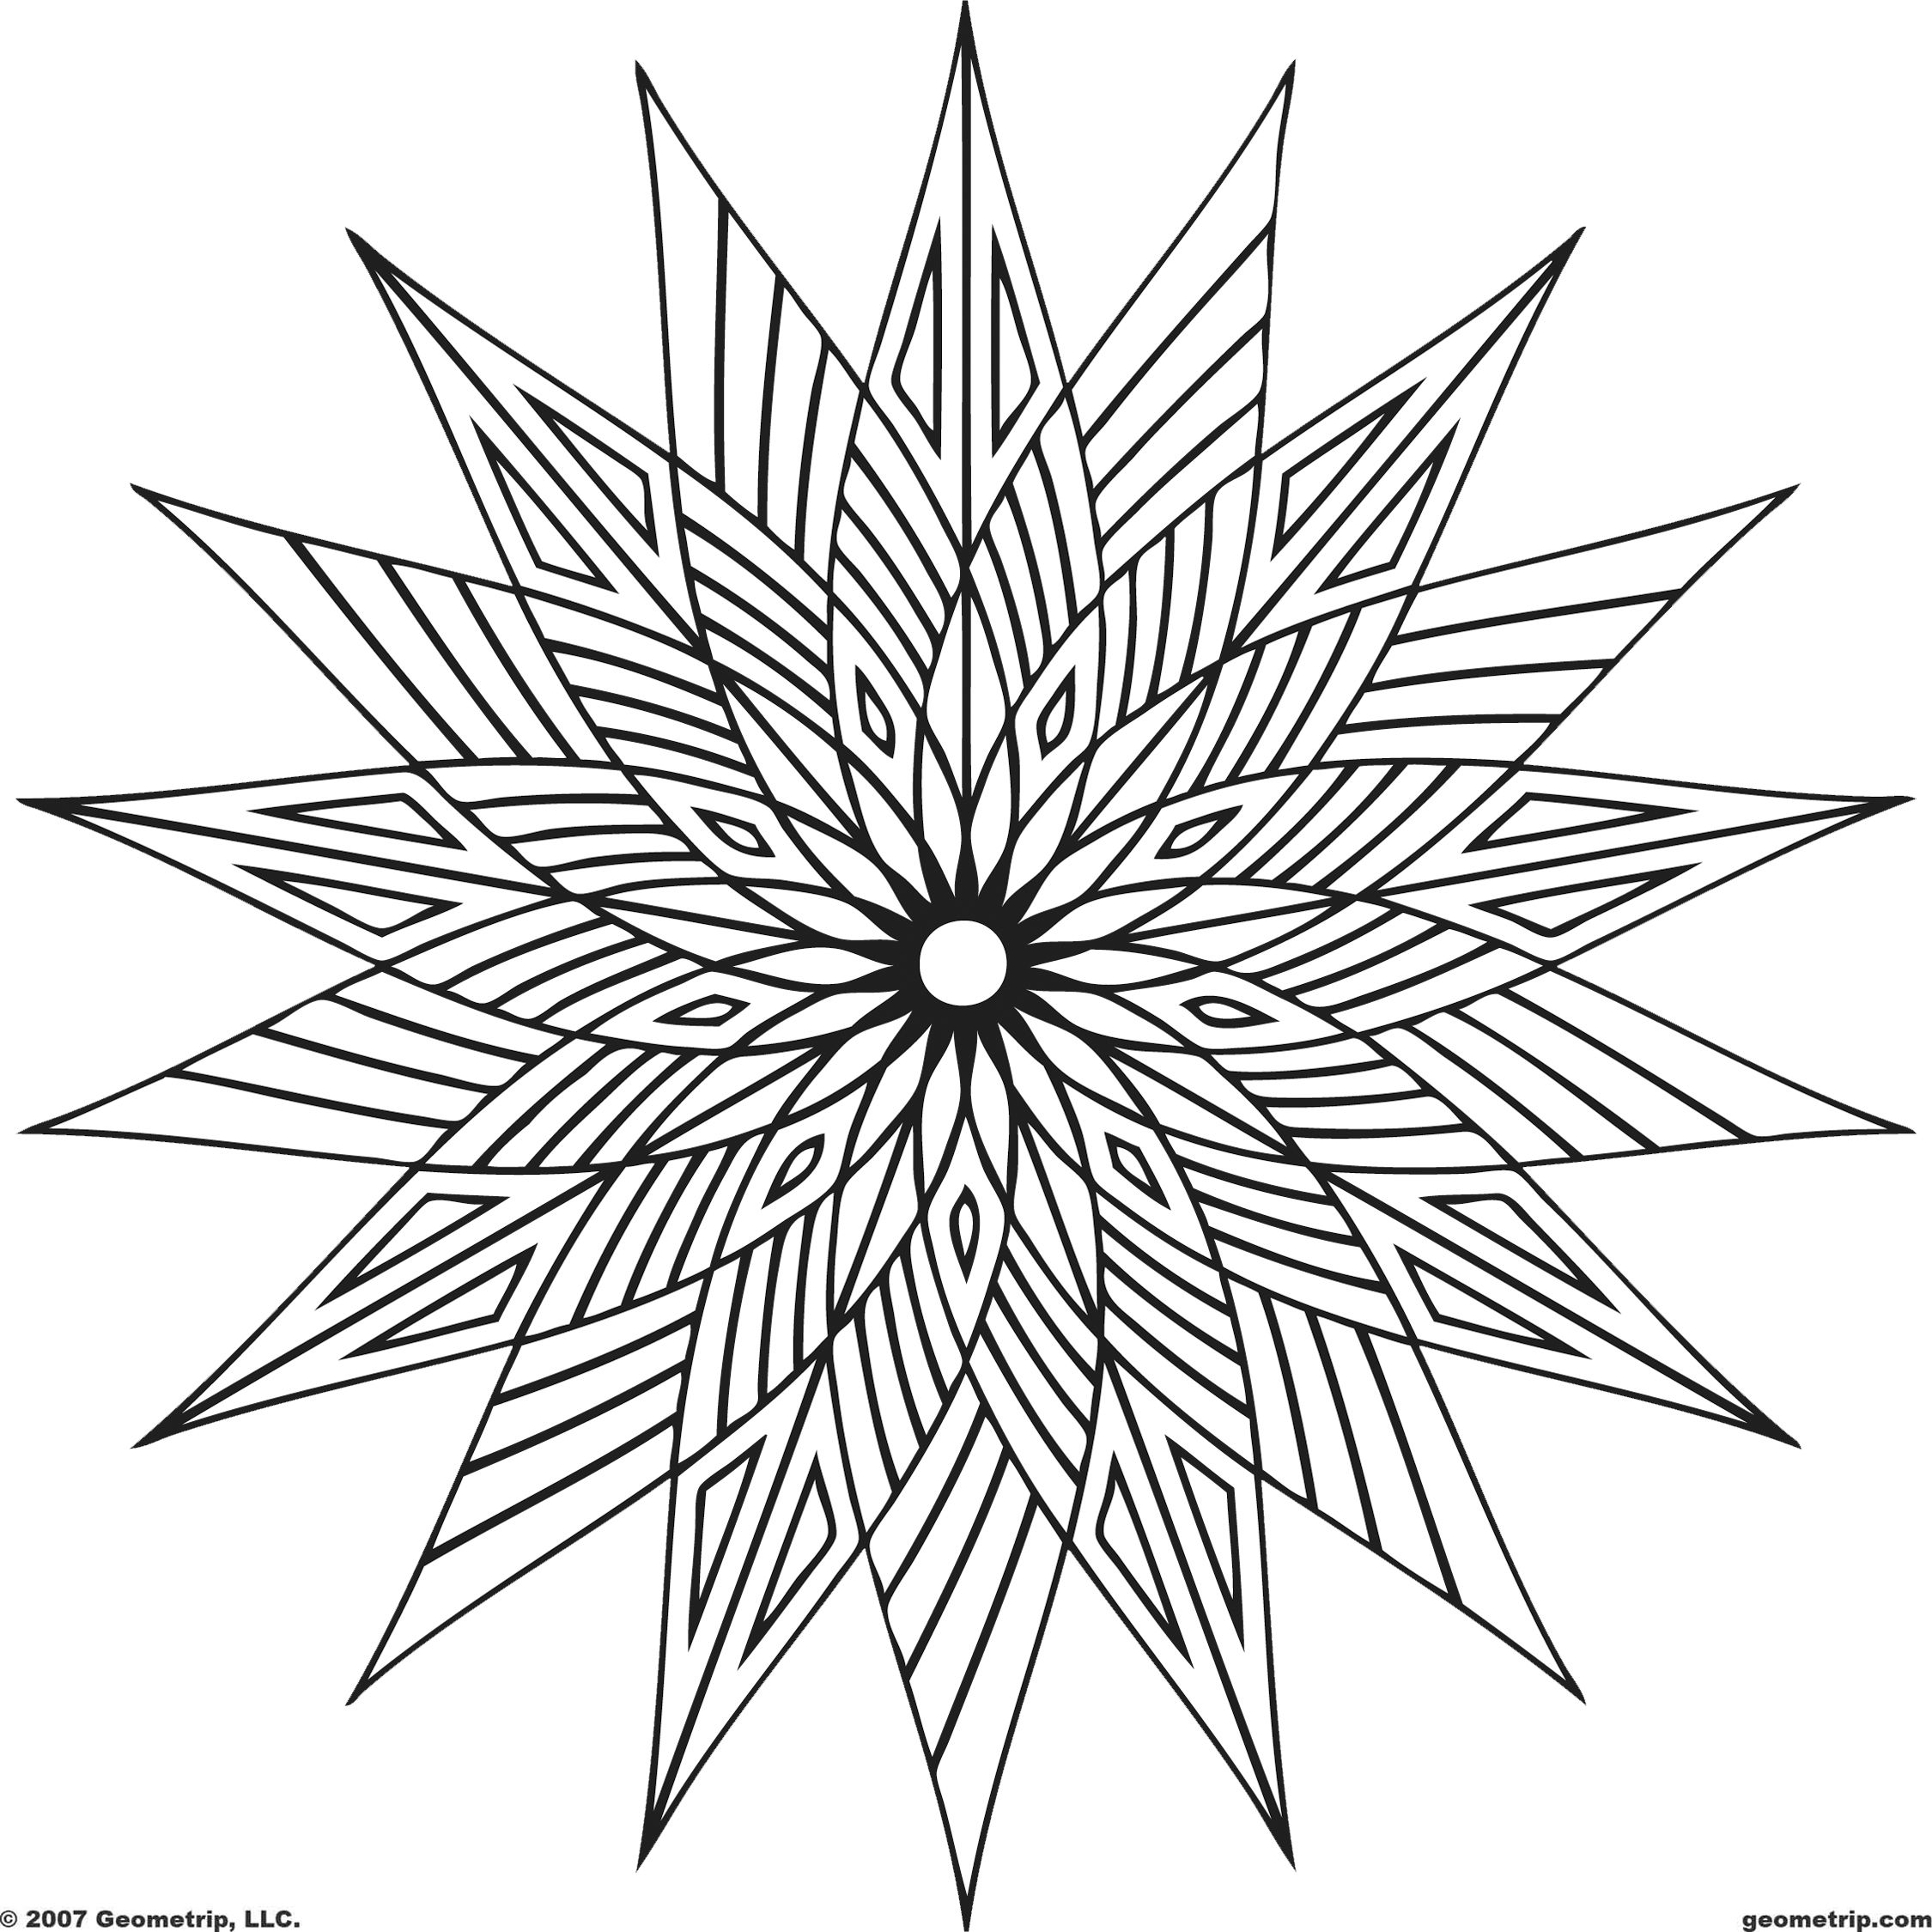 these geometric coloring pages pictures are online coloring pages that can be colored with color gradients - Cool Coloring Pages To Print For Free